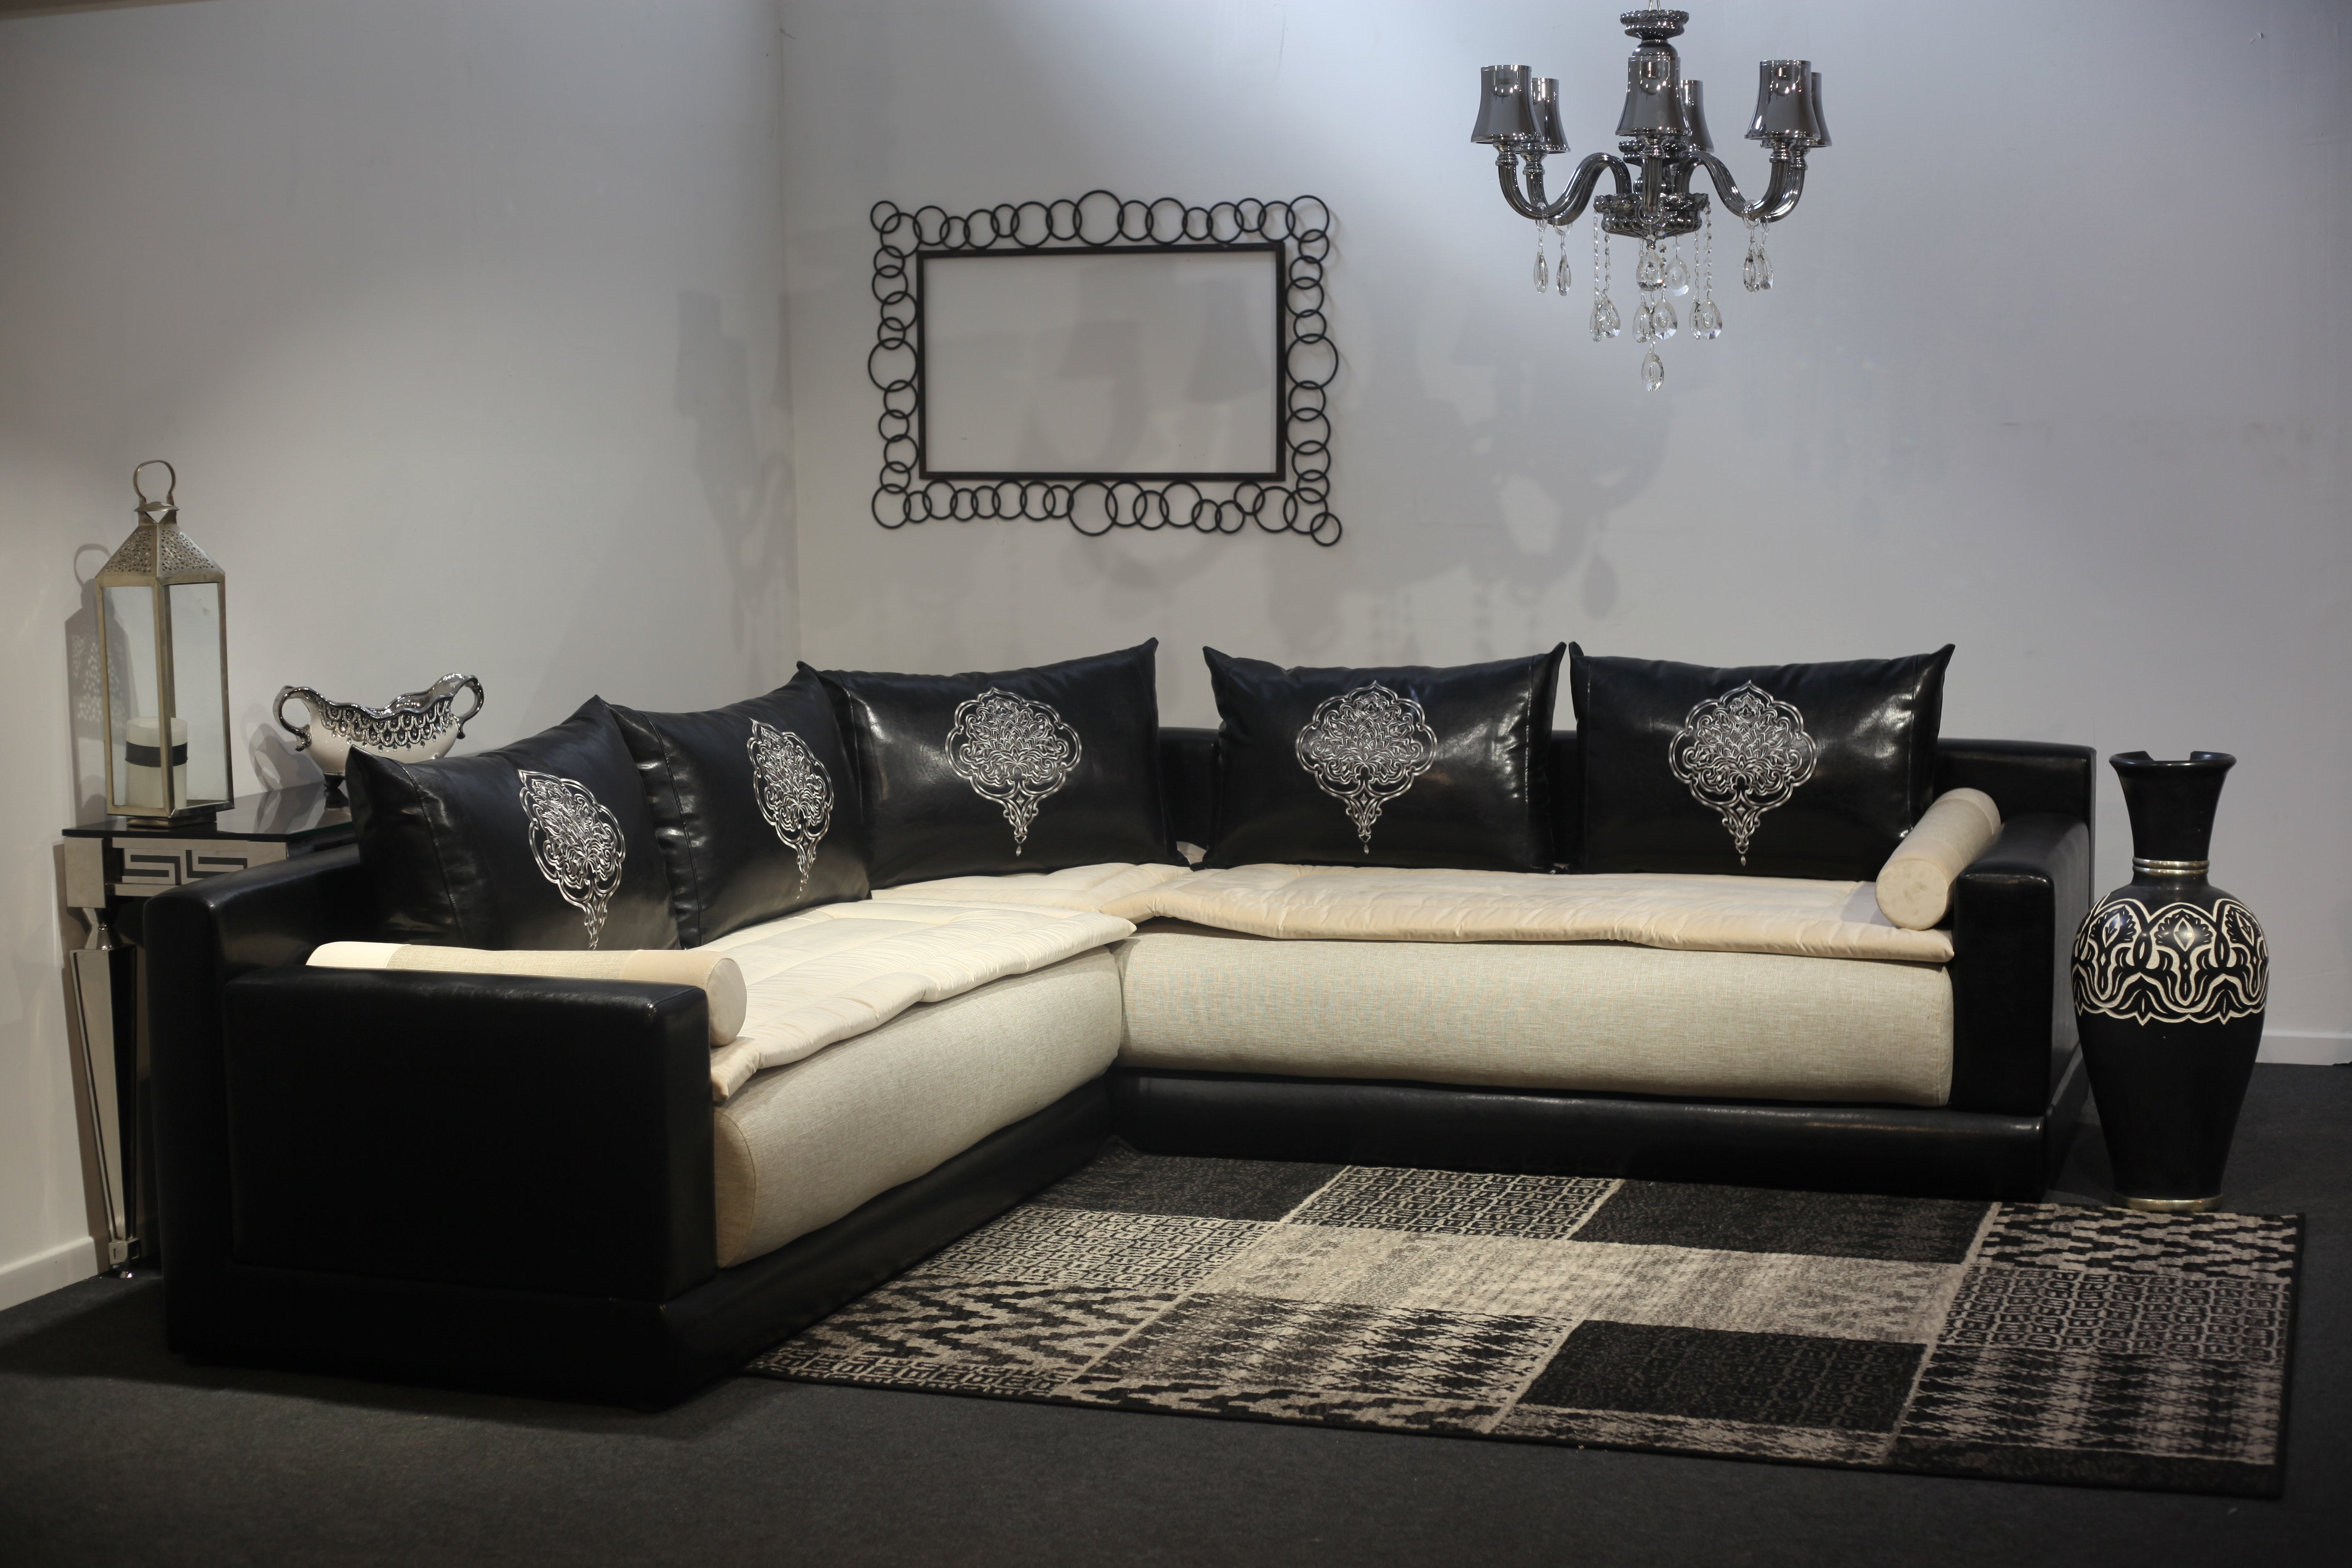 salon tanger le comptoir 126. Black Bedroom Furniture Sets. Home Design Ideas